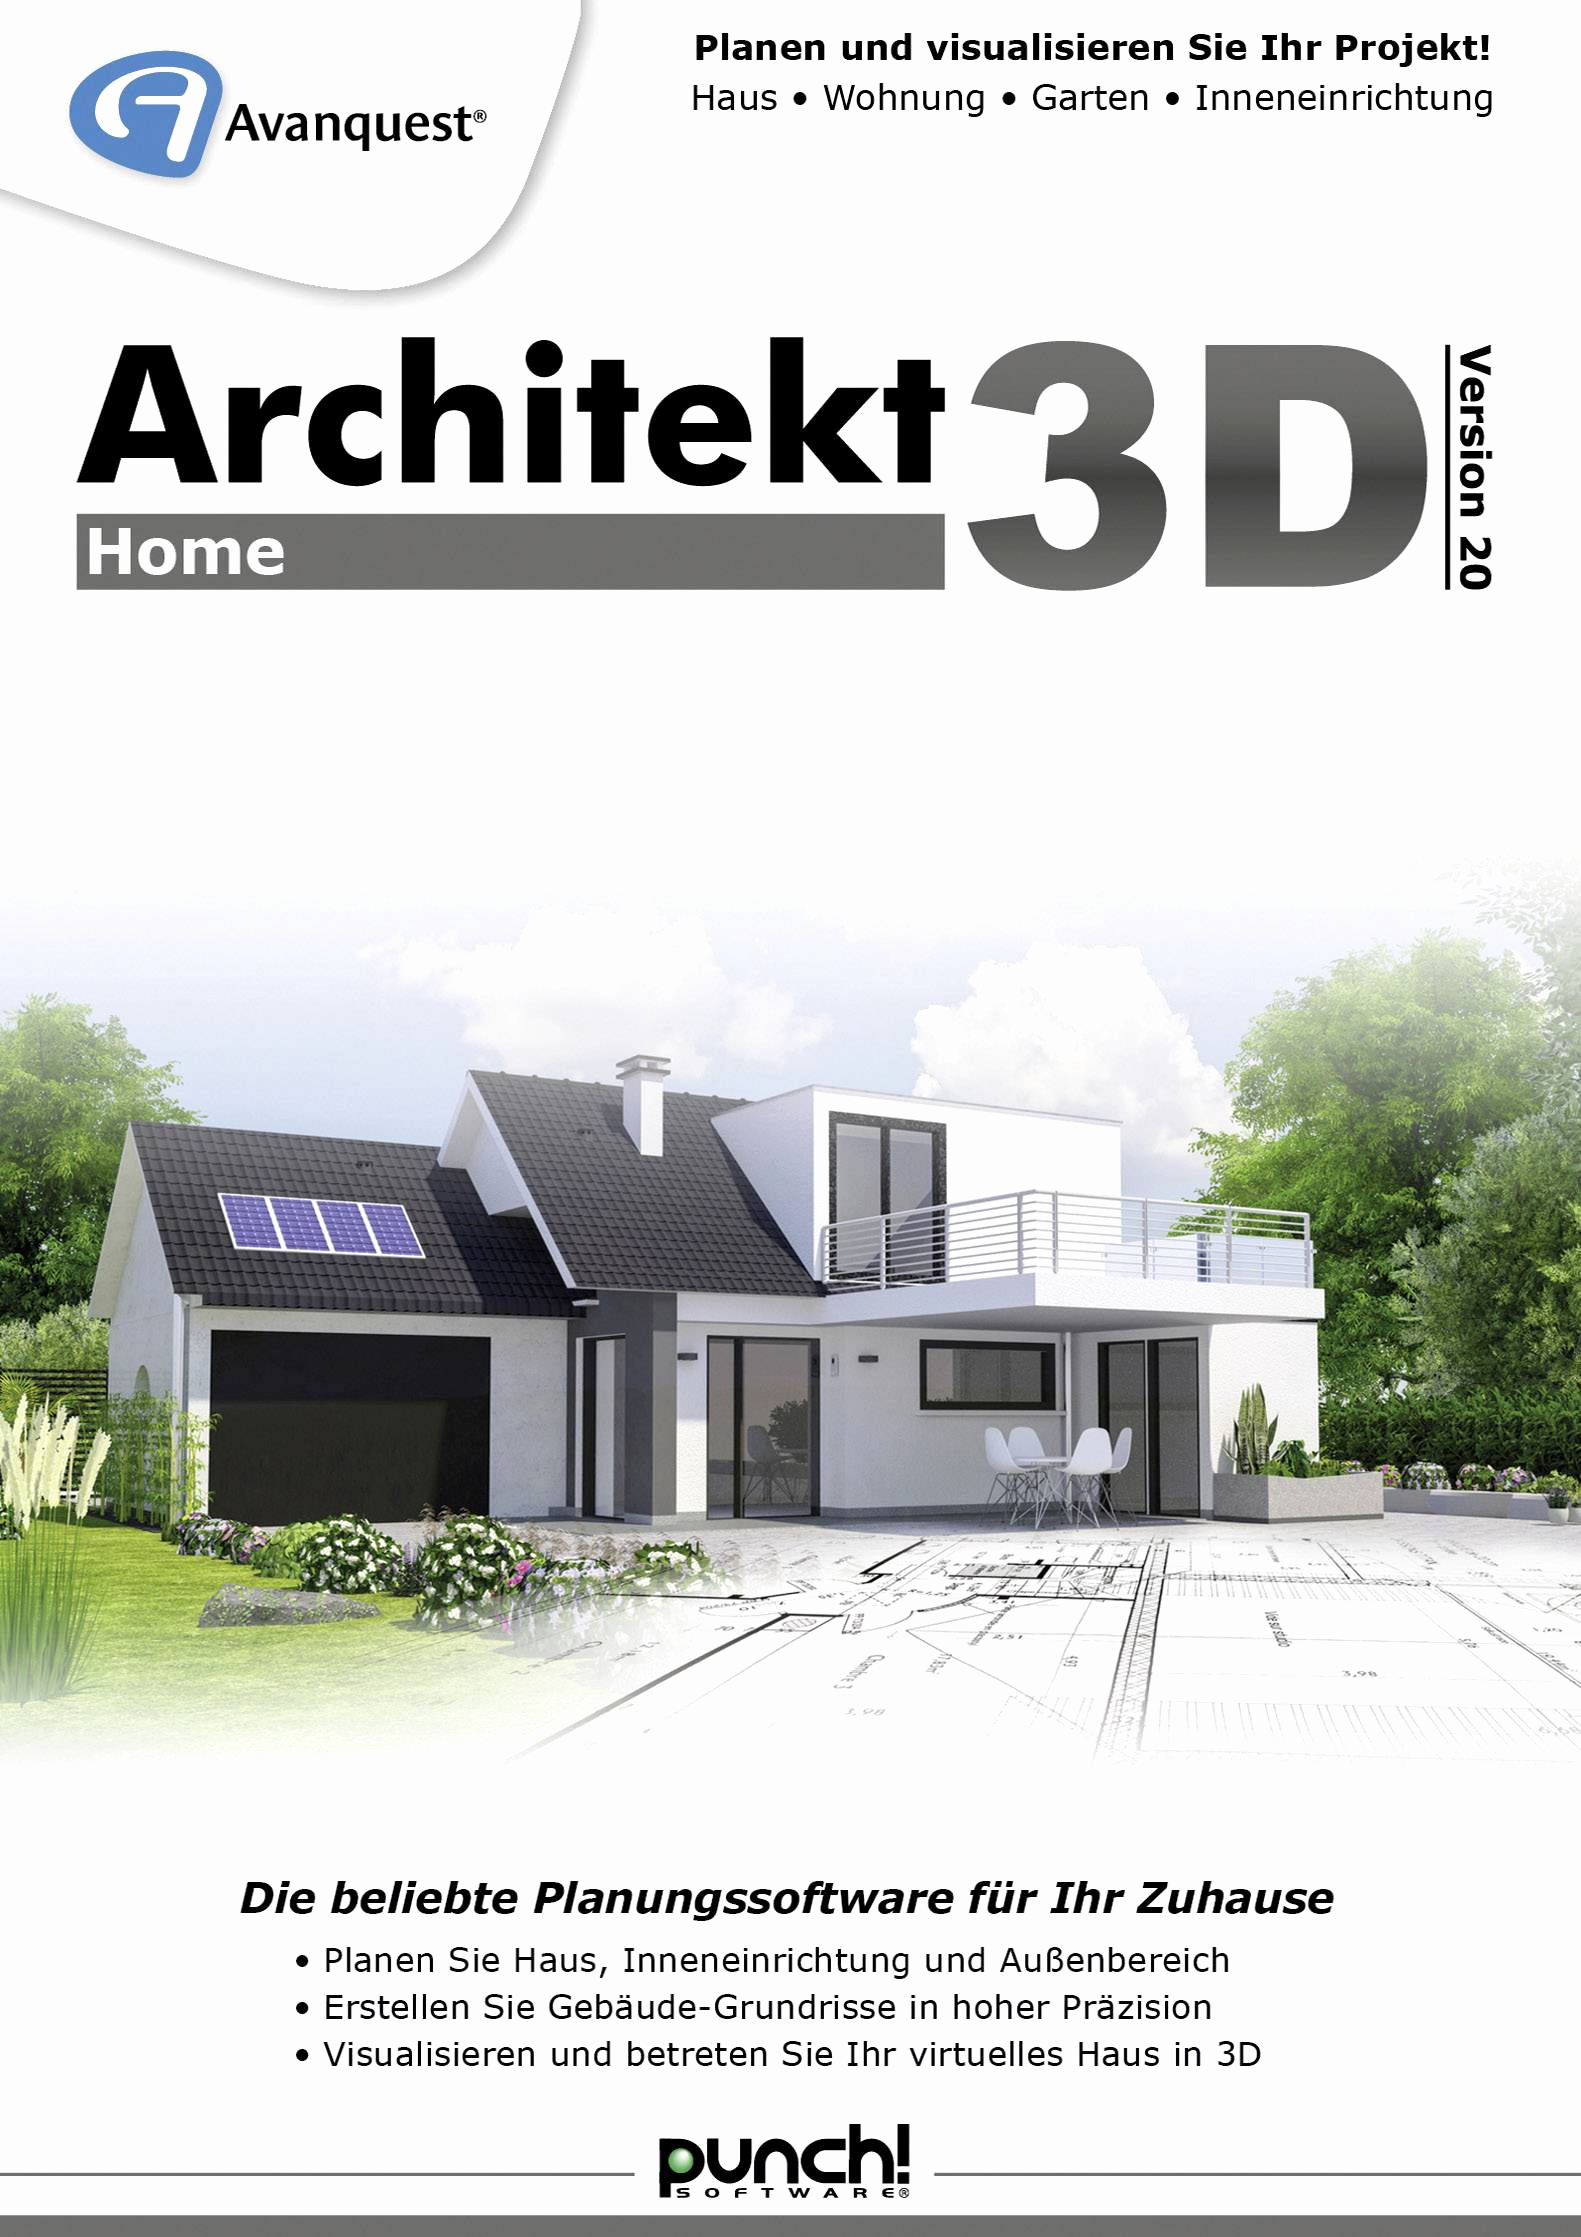 Haus Planen software Einzigartig Avanquest Architekt 3d 20 Home Vollversion 1 Lizenz Windows Planungs software